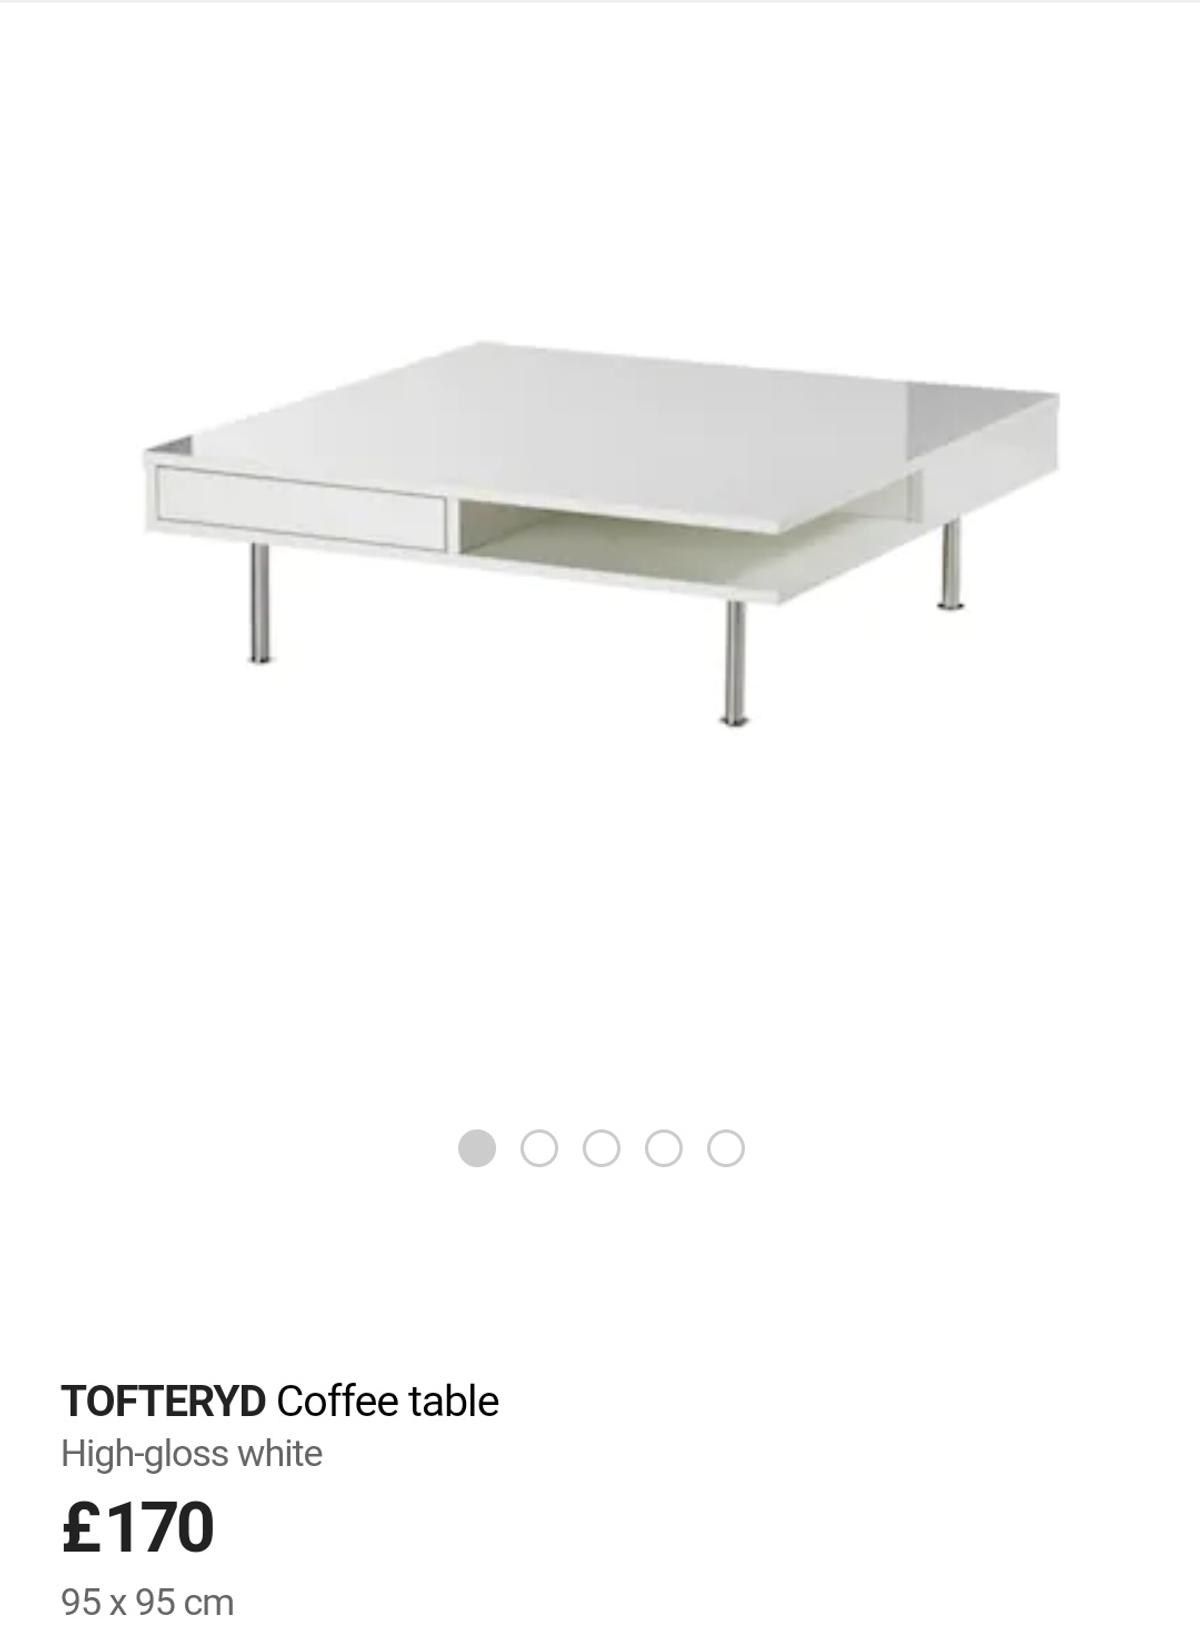 Ikea Tofteryd White Gloss Coffee Table New In E16 London For